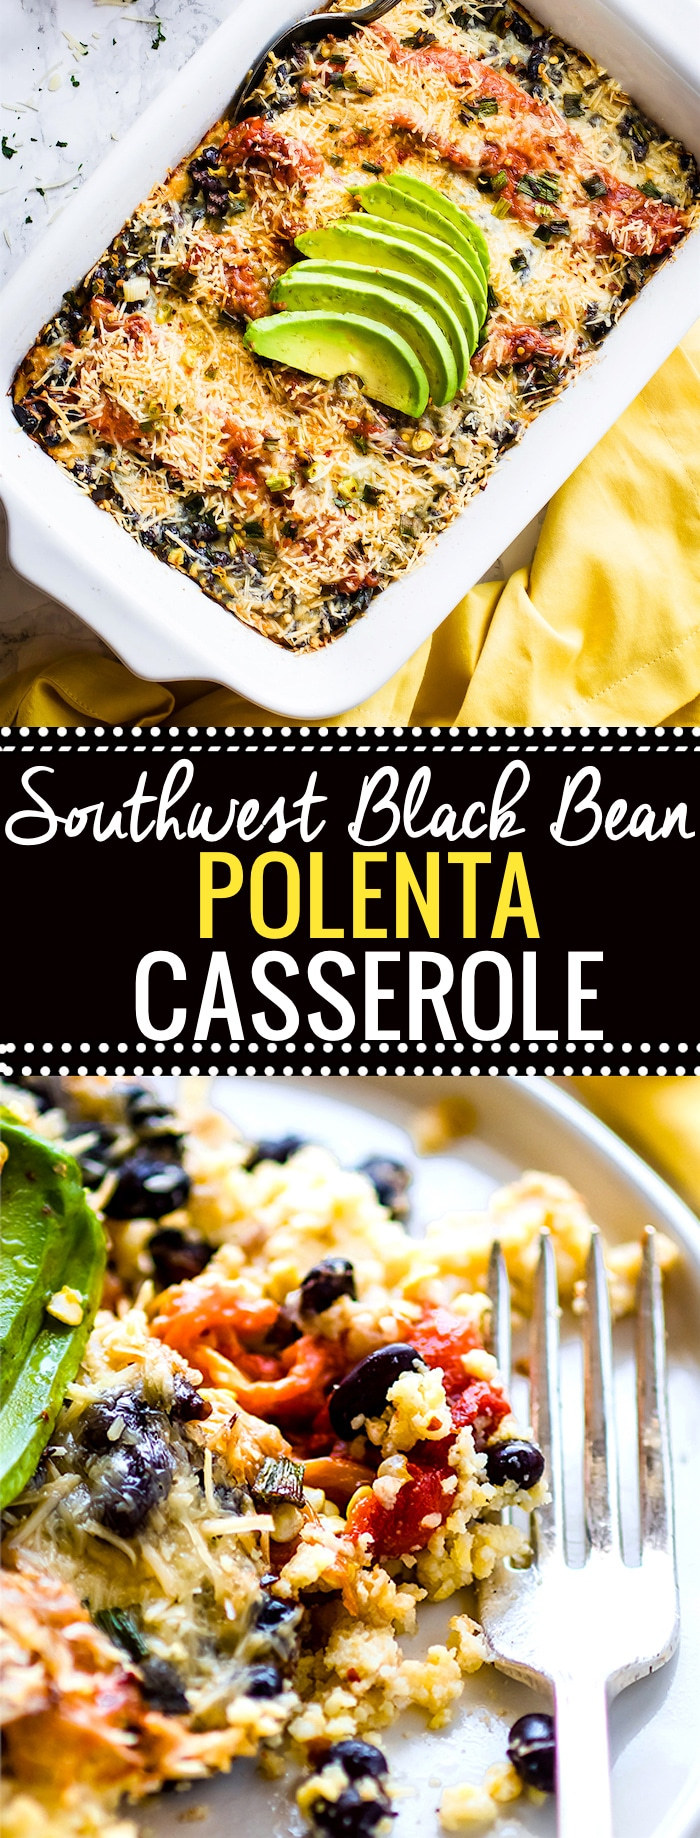 Southwest Black Beans Polenta Casserole! A wholesome gluten free vegetarian casserole made with Southwest black beans, polenta, roasted peppers, and more. Super easy to make ahead, healthy, and feeds a crowd! @cottercrunch